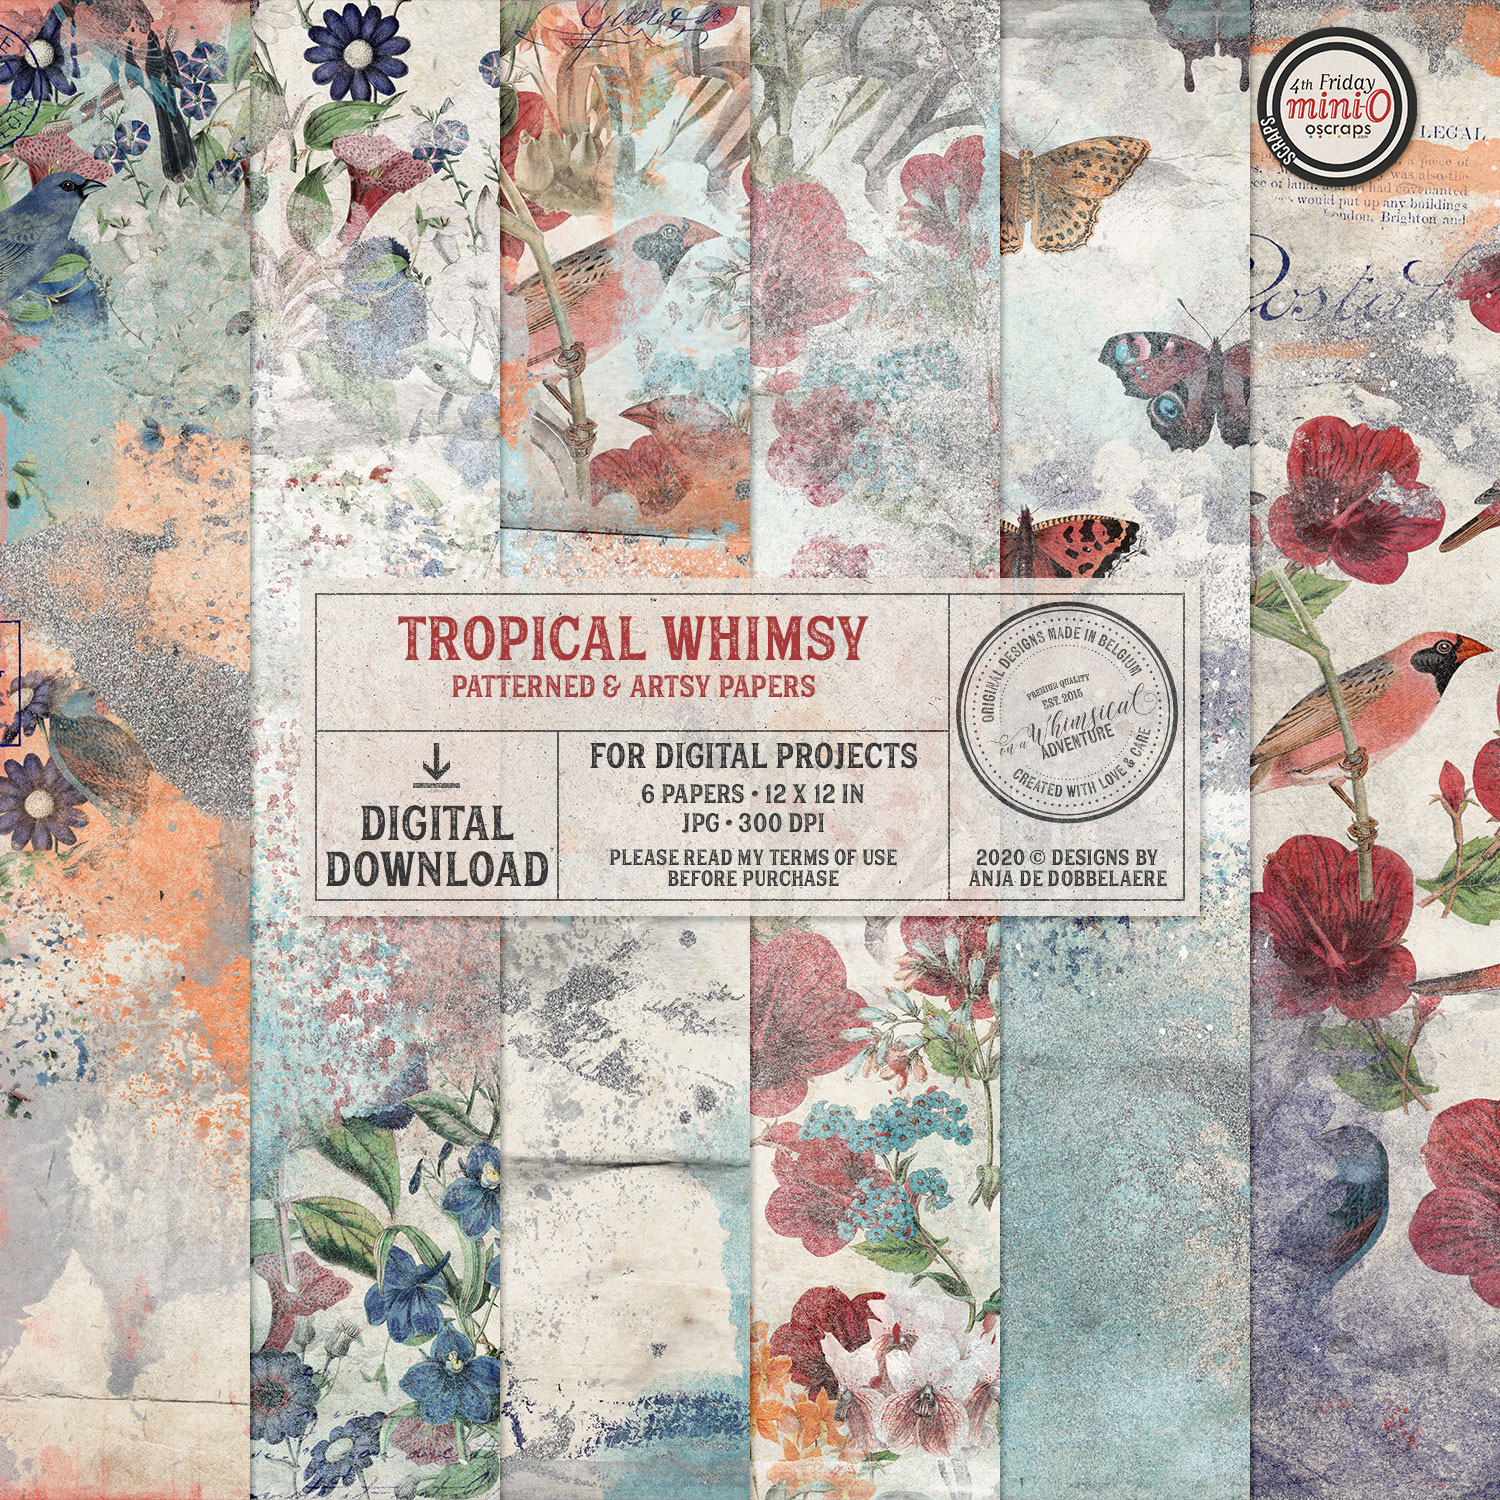 Tropical Whimsy Patterned And Artsy Papers by On A Whimsical Adventure